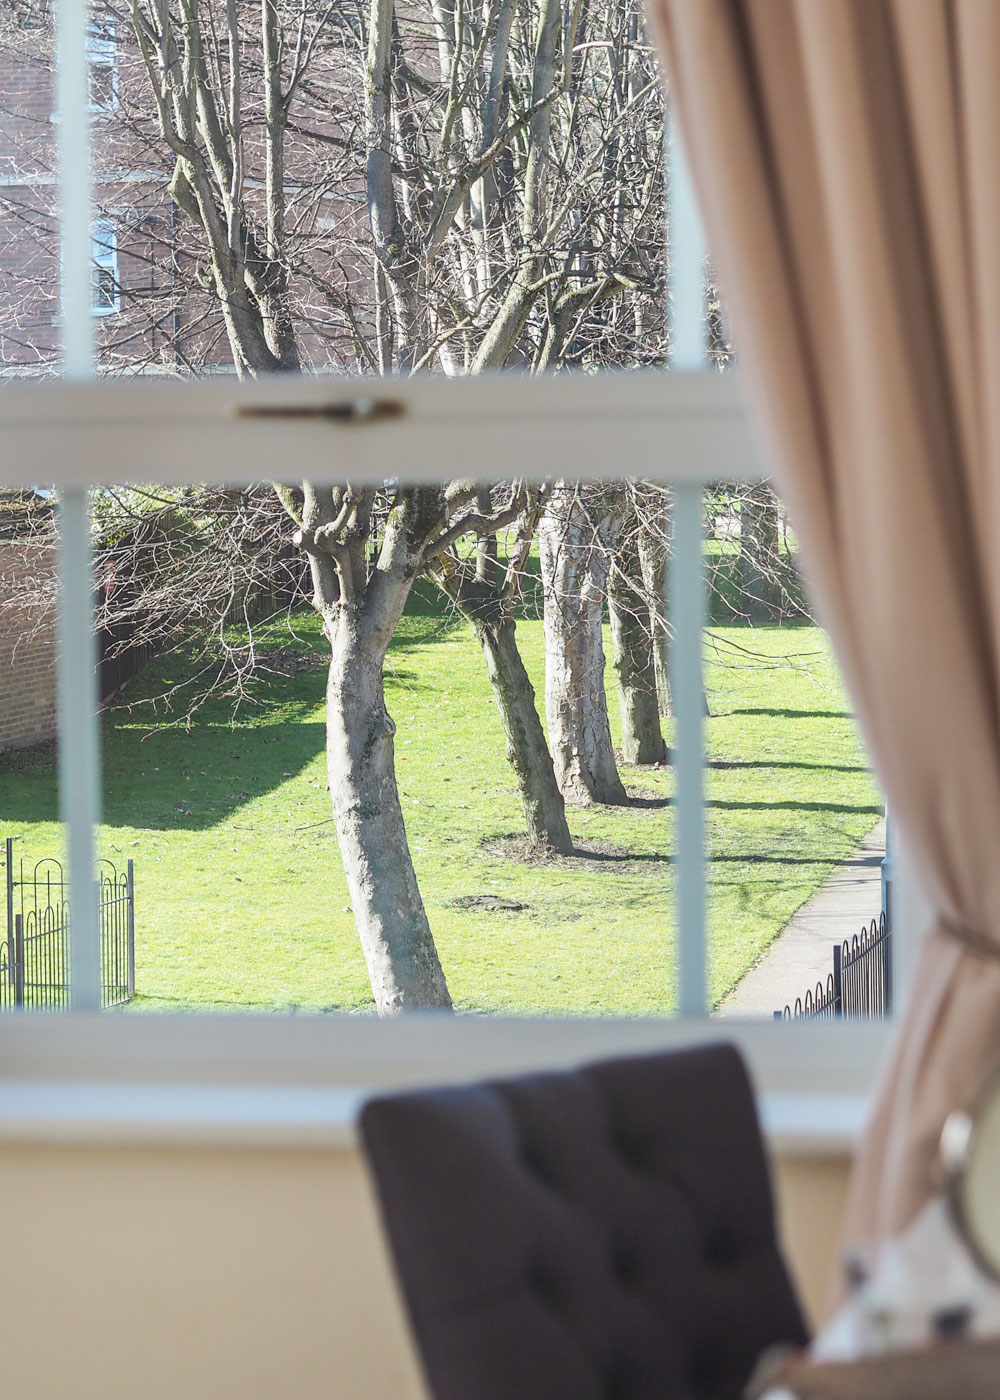 Today I'm sharing how to get privacy from your neighbours with the help of The Window Film Company. In just ten minutes you can create privacy, whilst still allowing natural light to shine through.